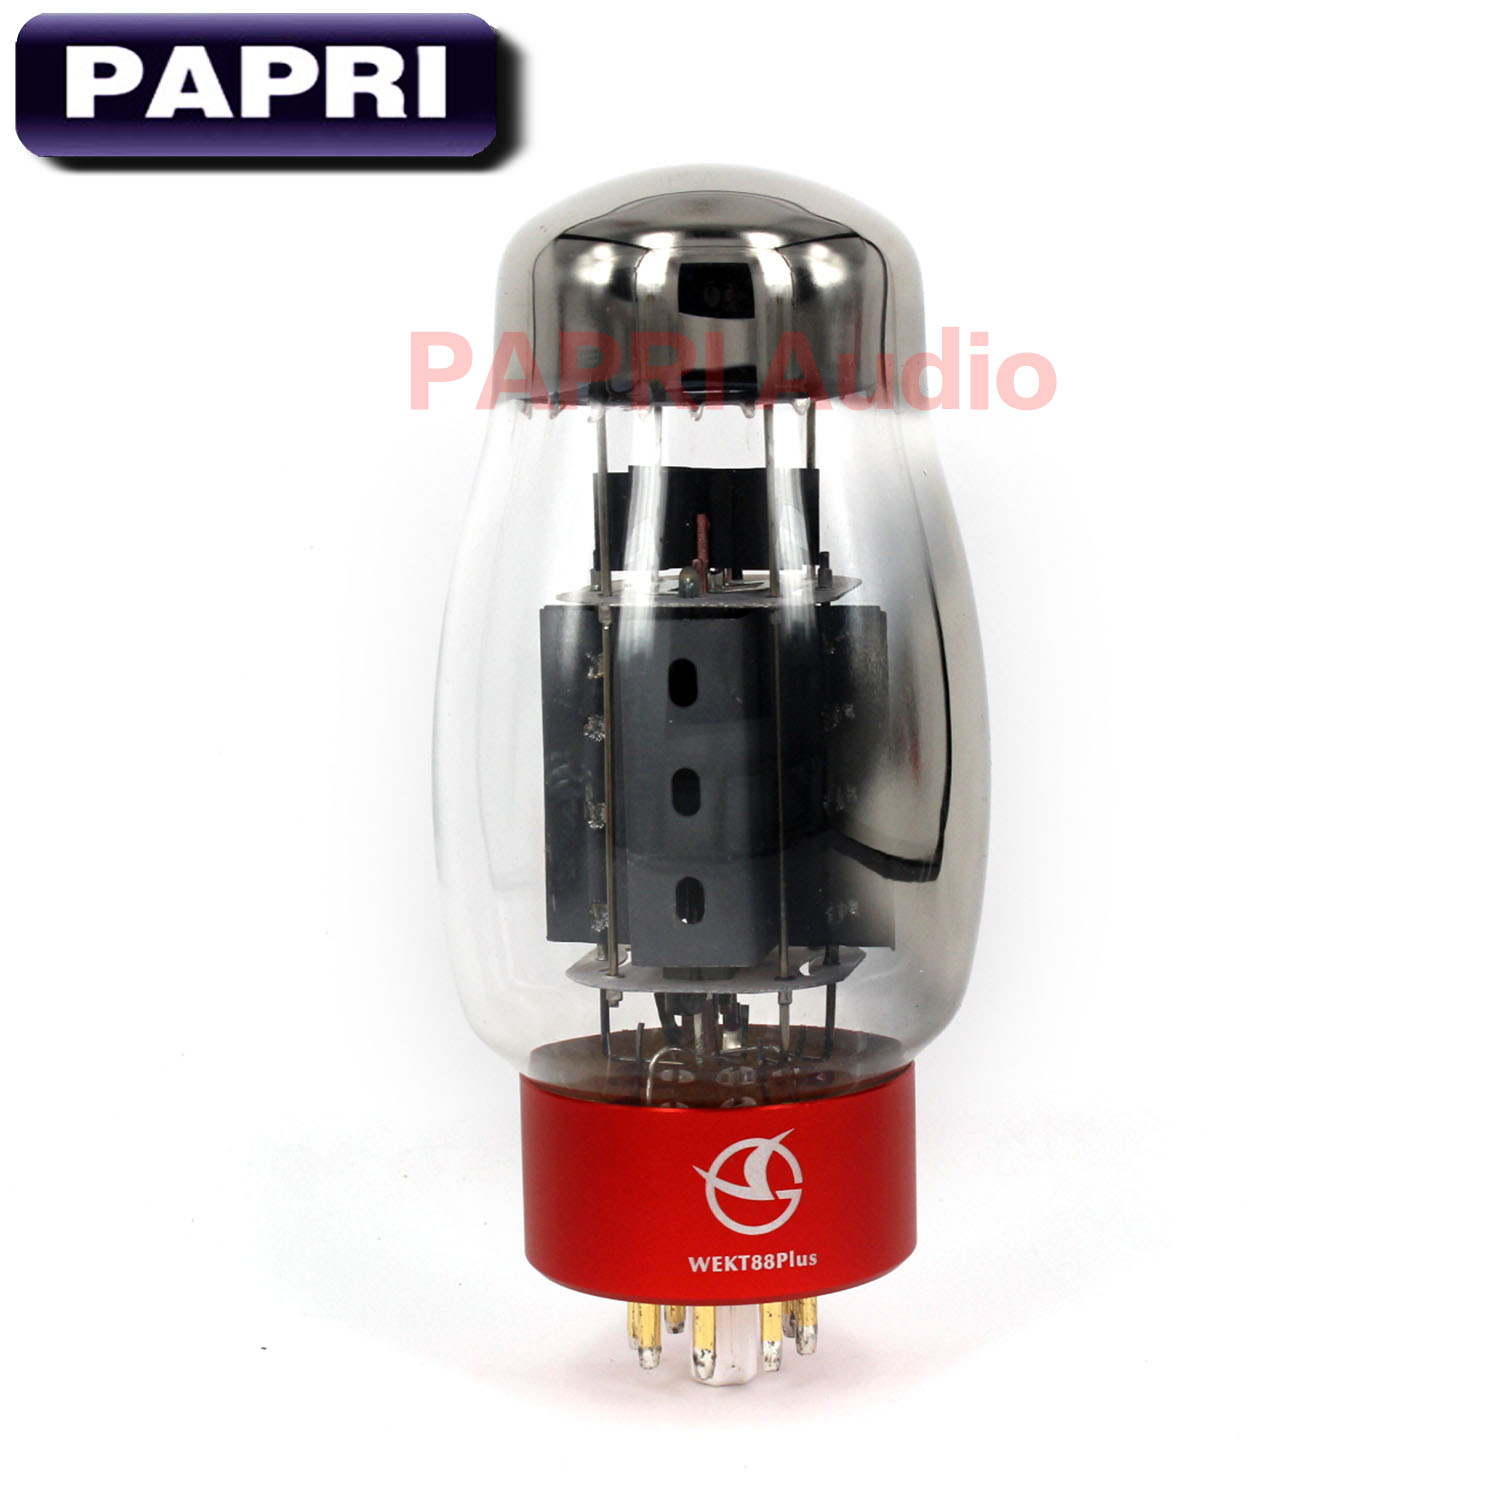 PAPRI Newest WEKT88 PLUS Vacuum Tube HiFi Shuguang KT88 Replace Tube For Amplifier Audio HIFI DIY Factory Tested Matched 1PCS цена и фото